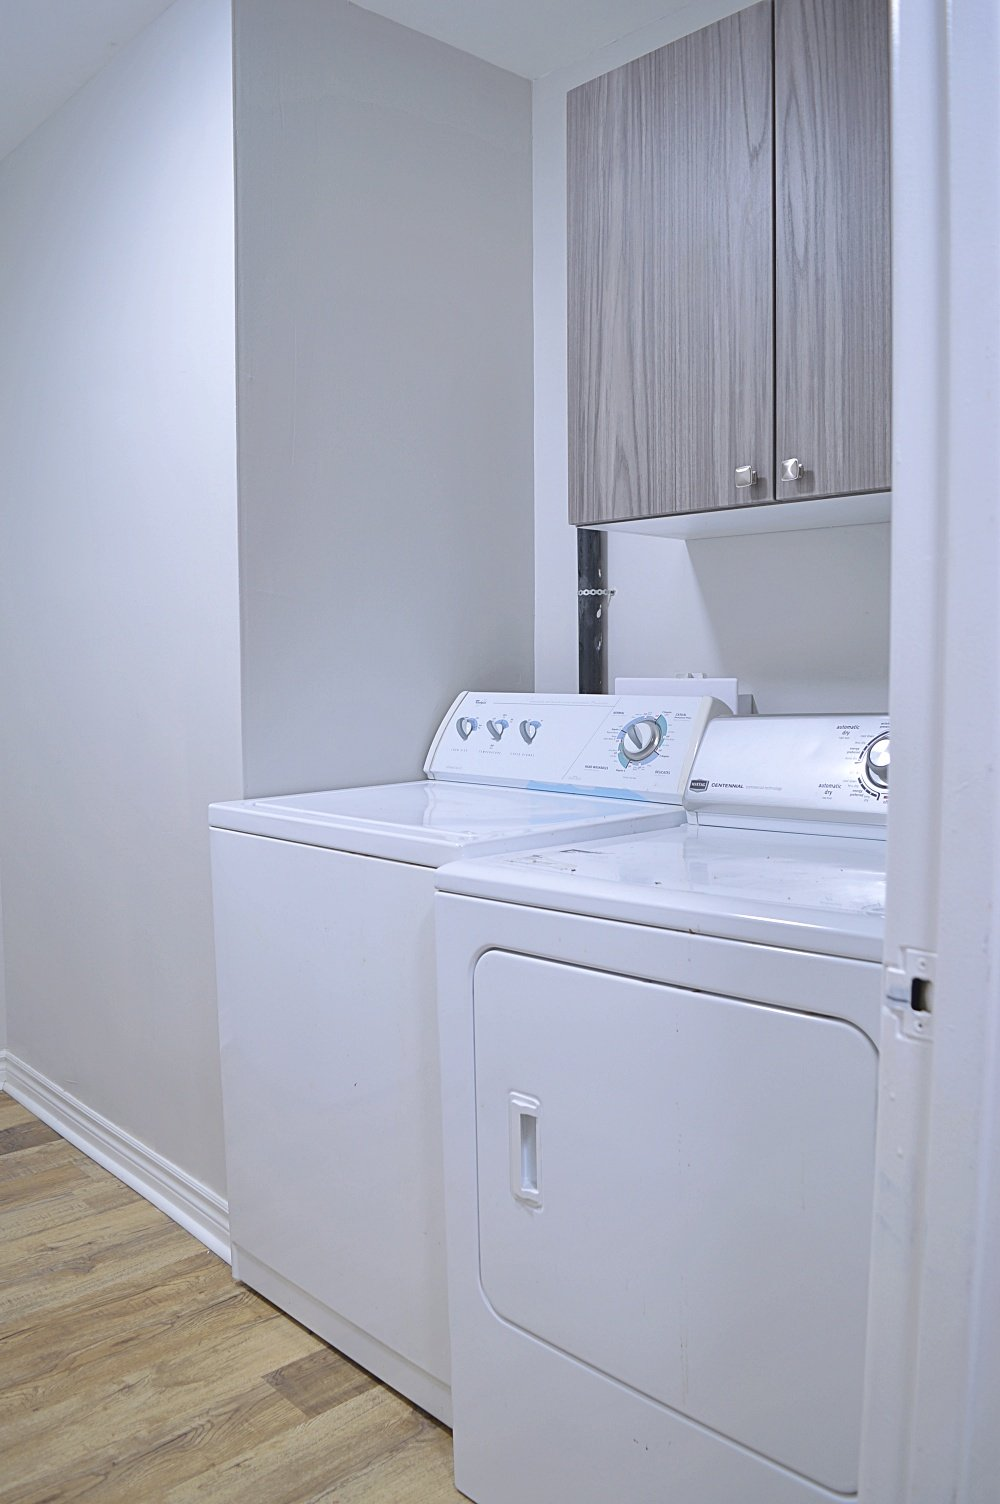 rental property laundry room renovation